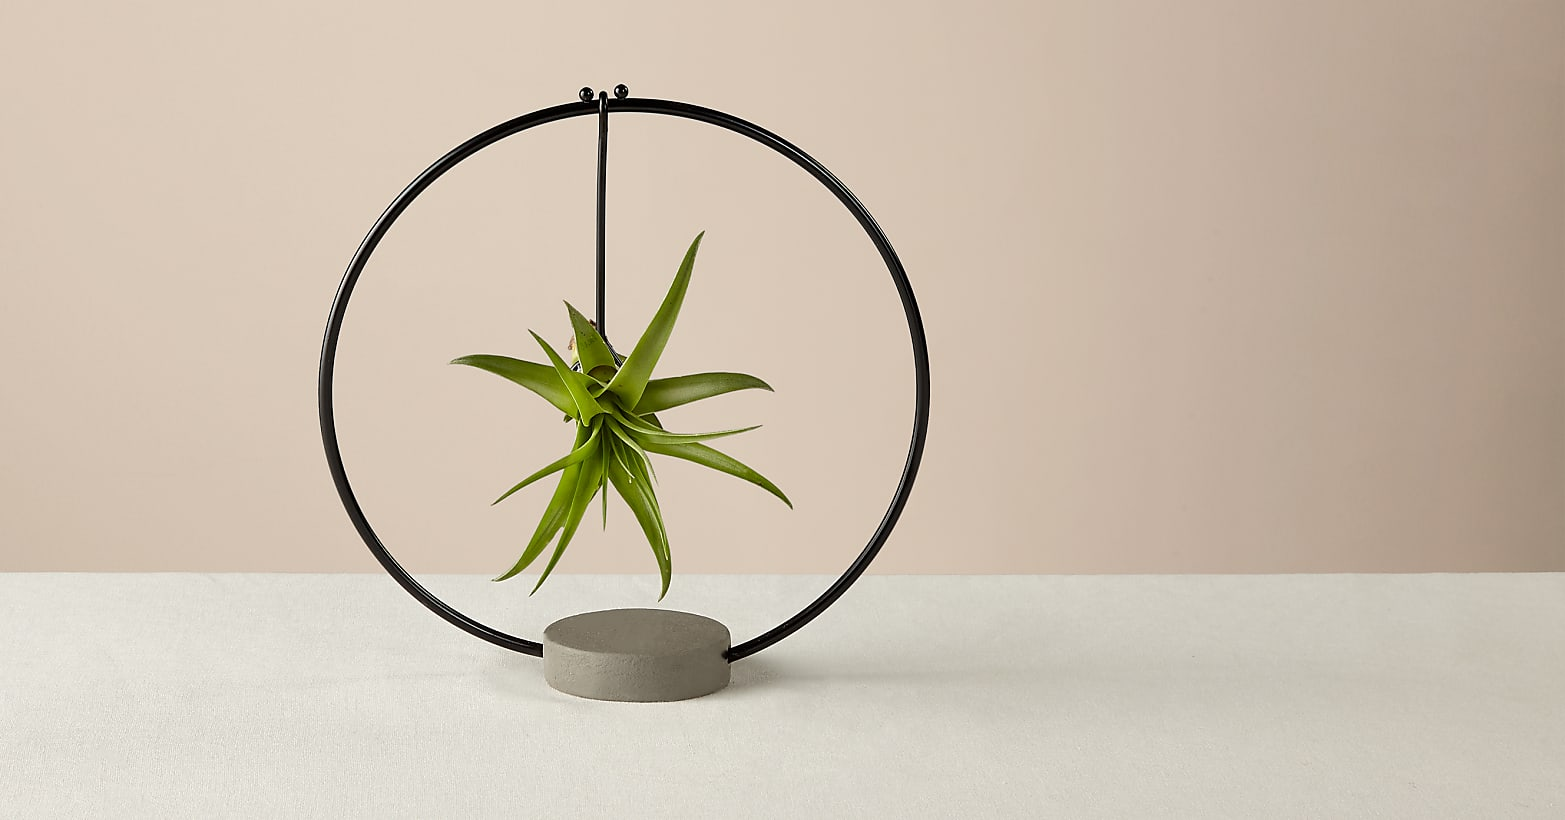 Hanging Air Plant - Image 1 Of 2